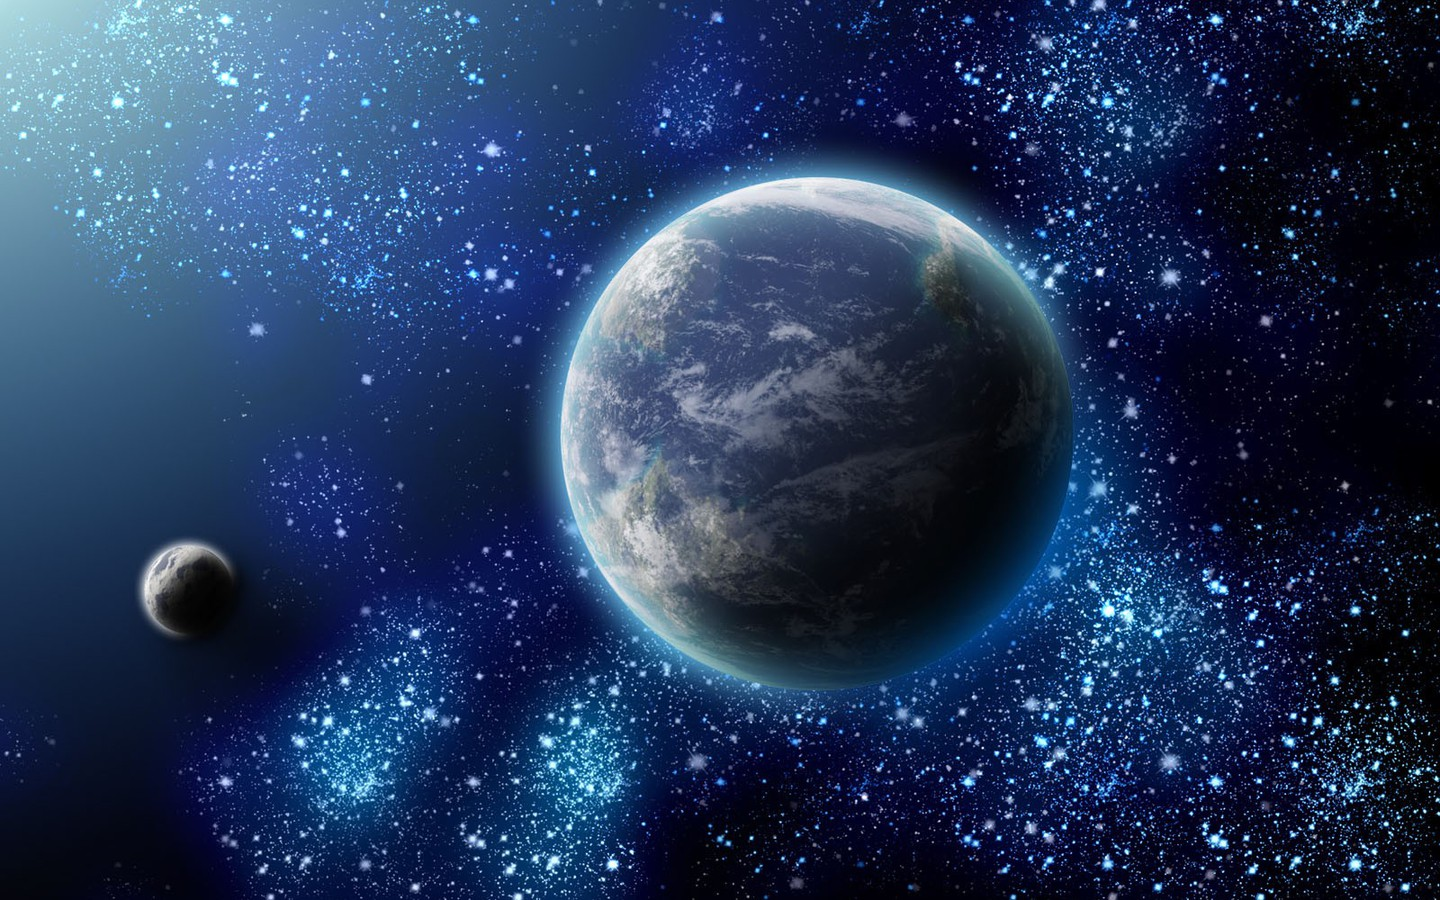 [48+] 3D Space Wallpapers HD on WallpaperSafari